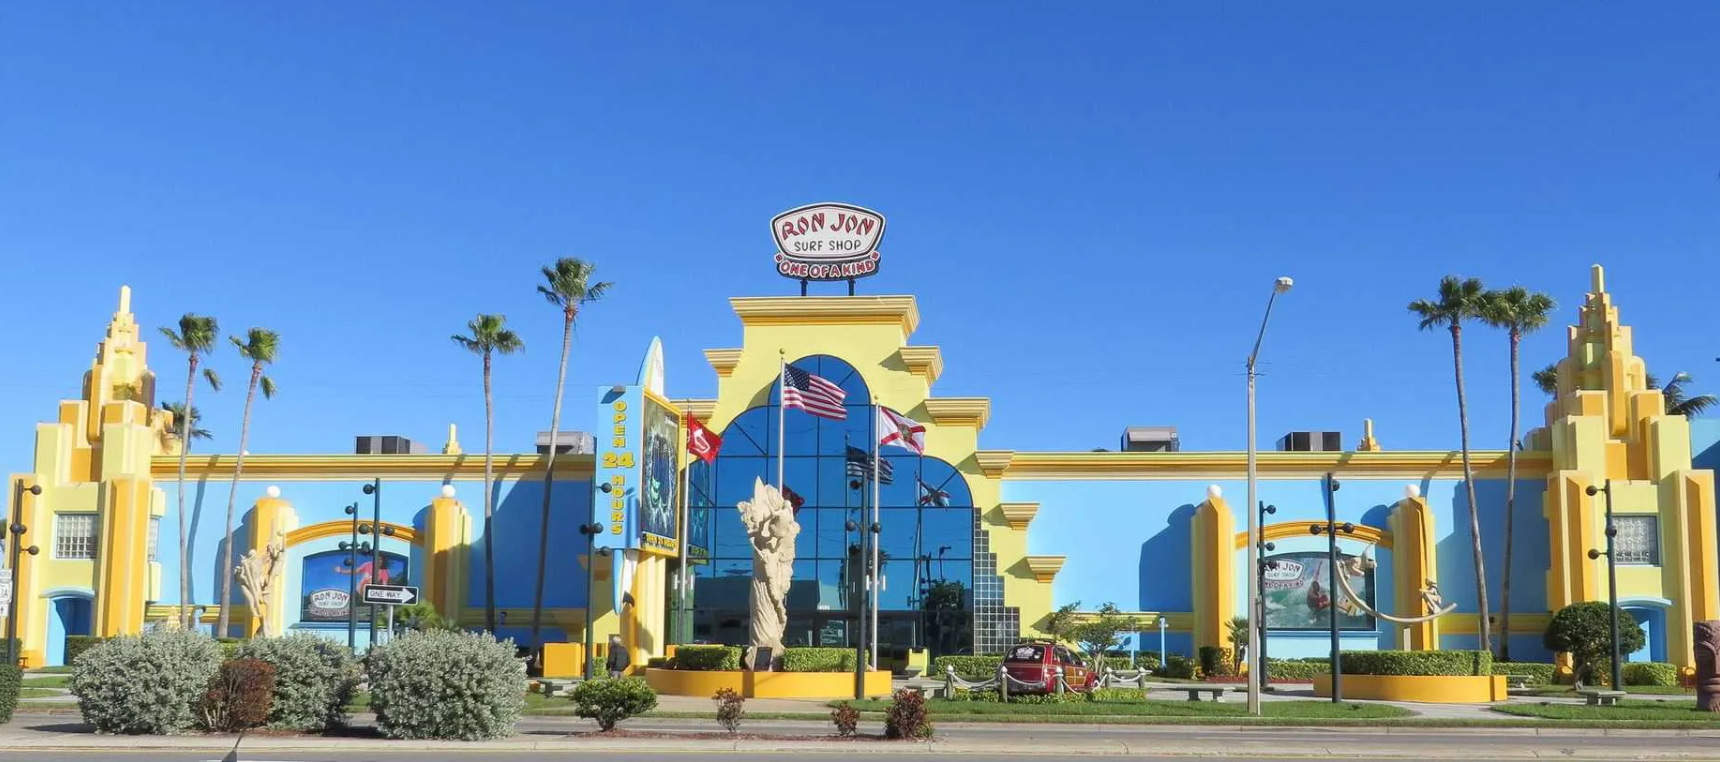 Ron Jon Surf Shop at Disney Springs. Photo: Disney.